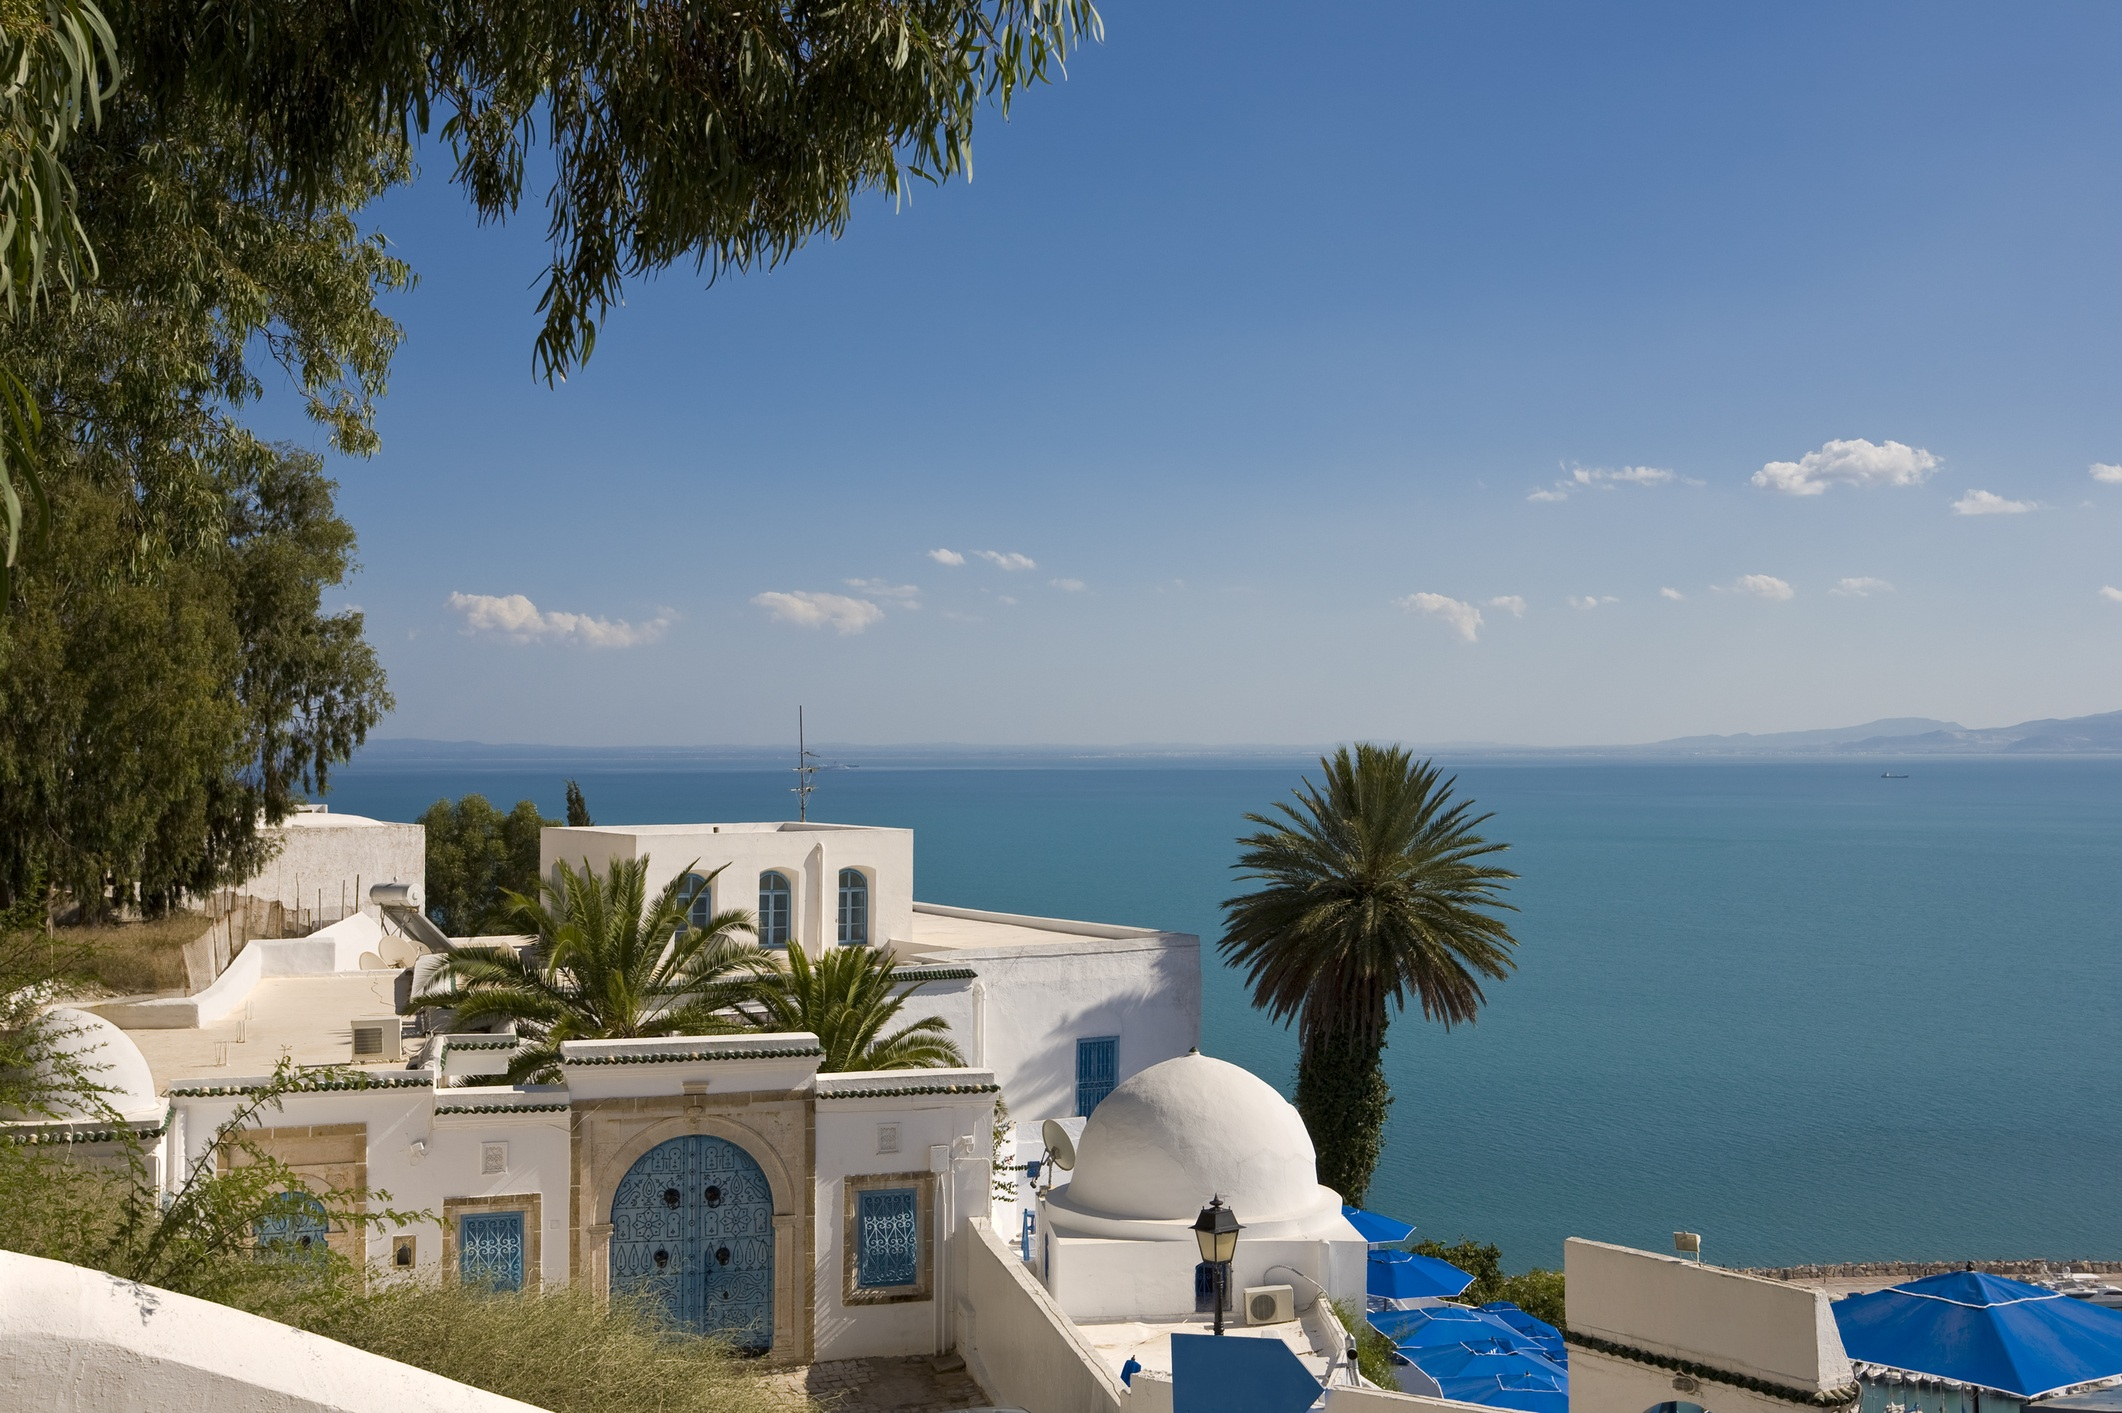 Tunisia white house with blue door and palm trees overlooking the ocean